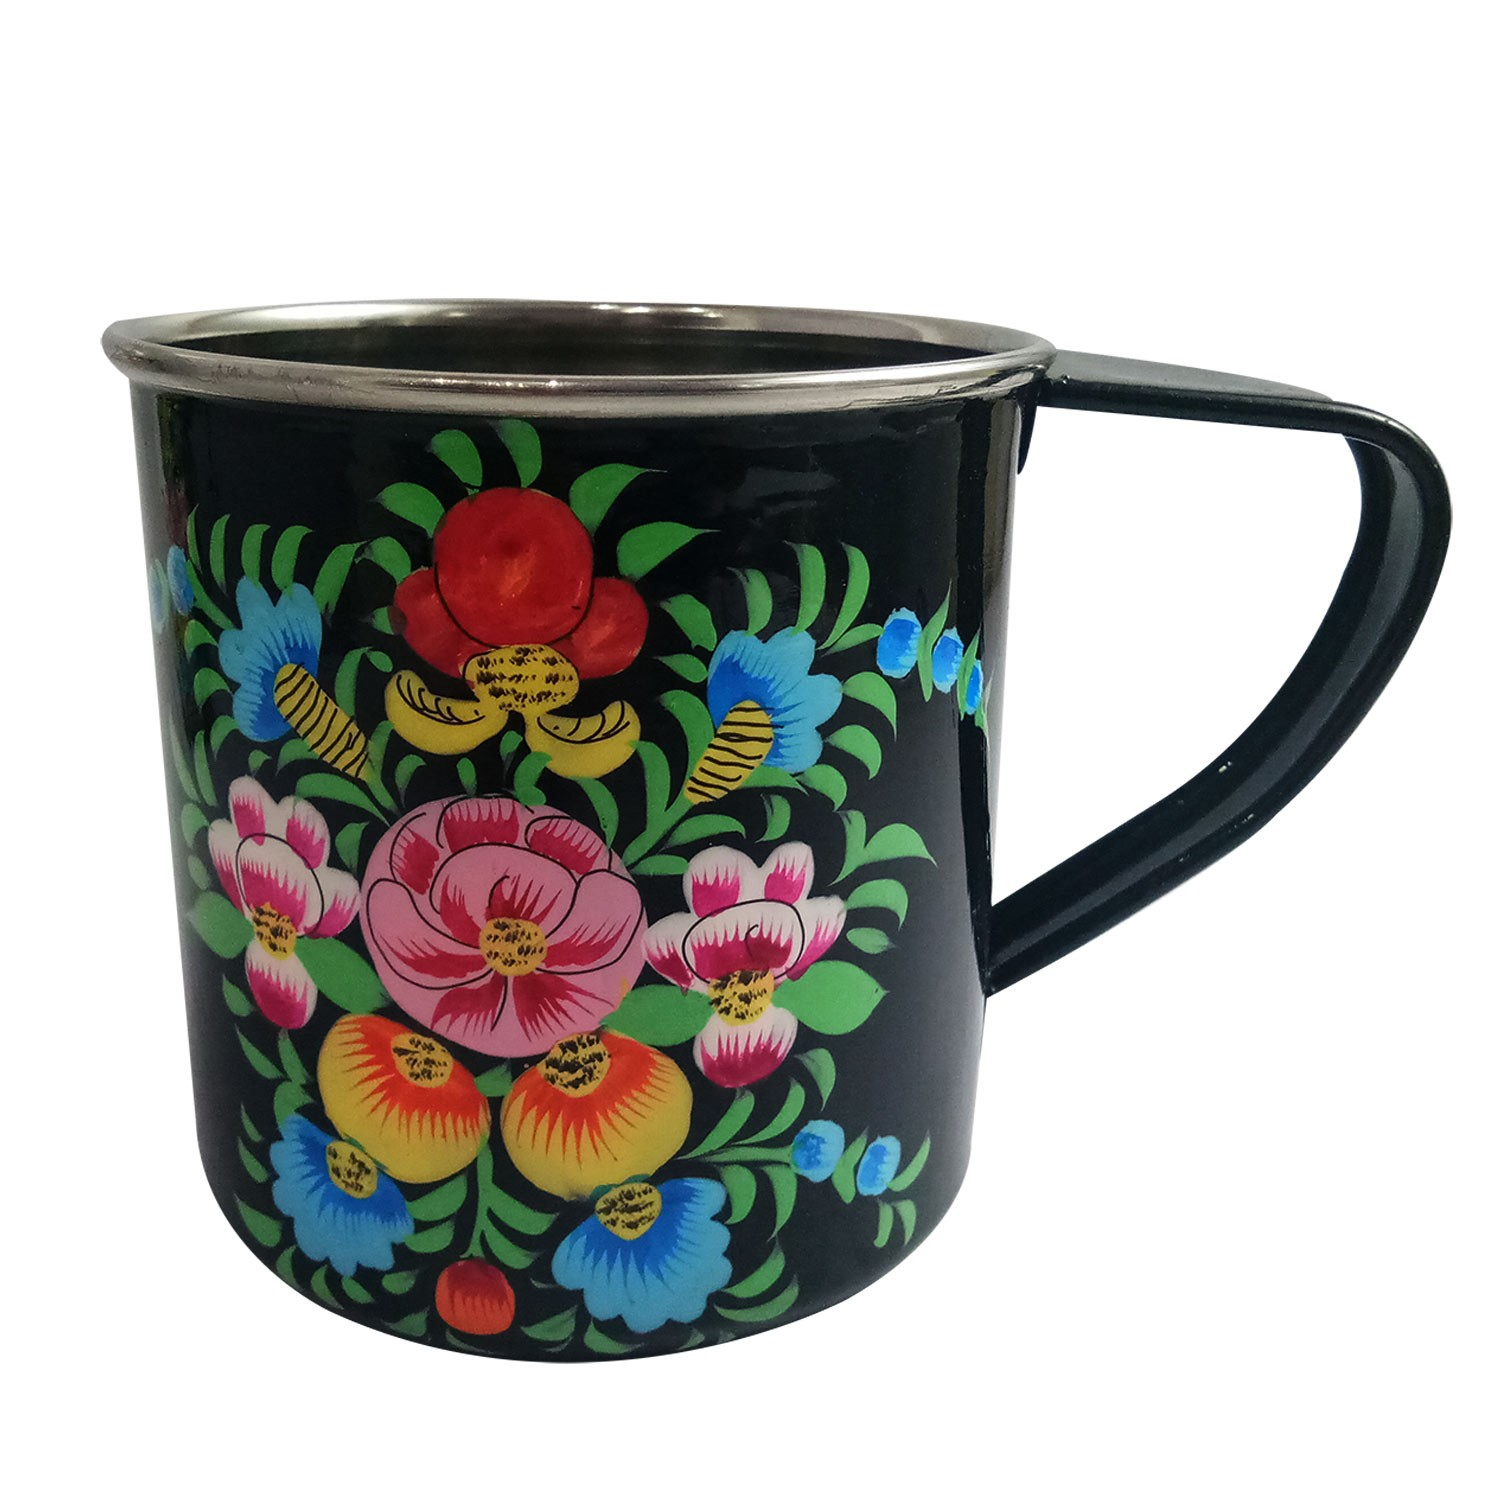 Handmade exclusive paper mache Multicolor Mugs 2 pcs By Rural Artisan.